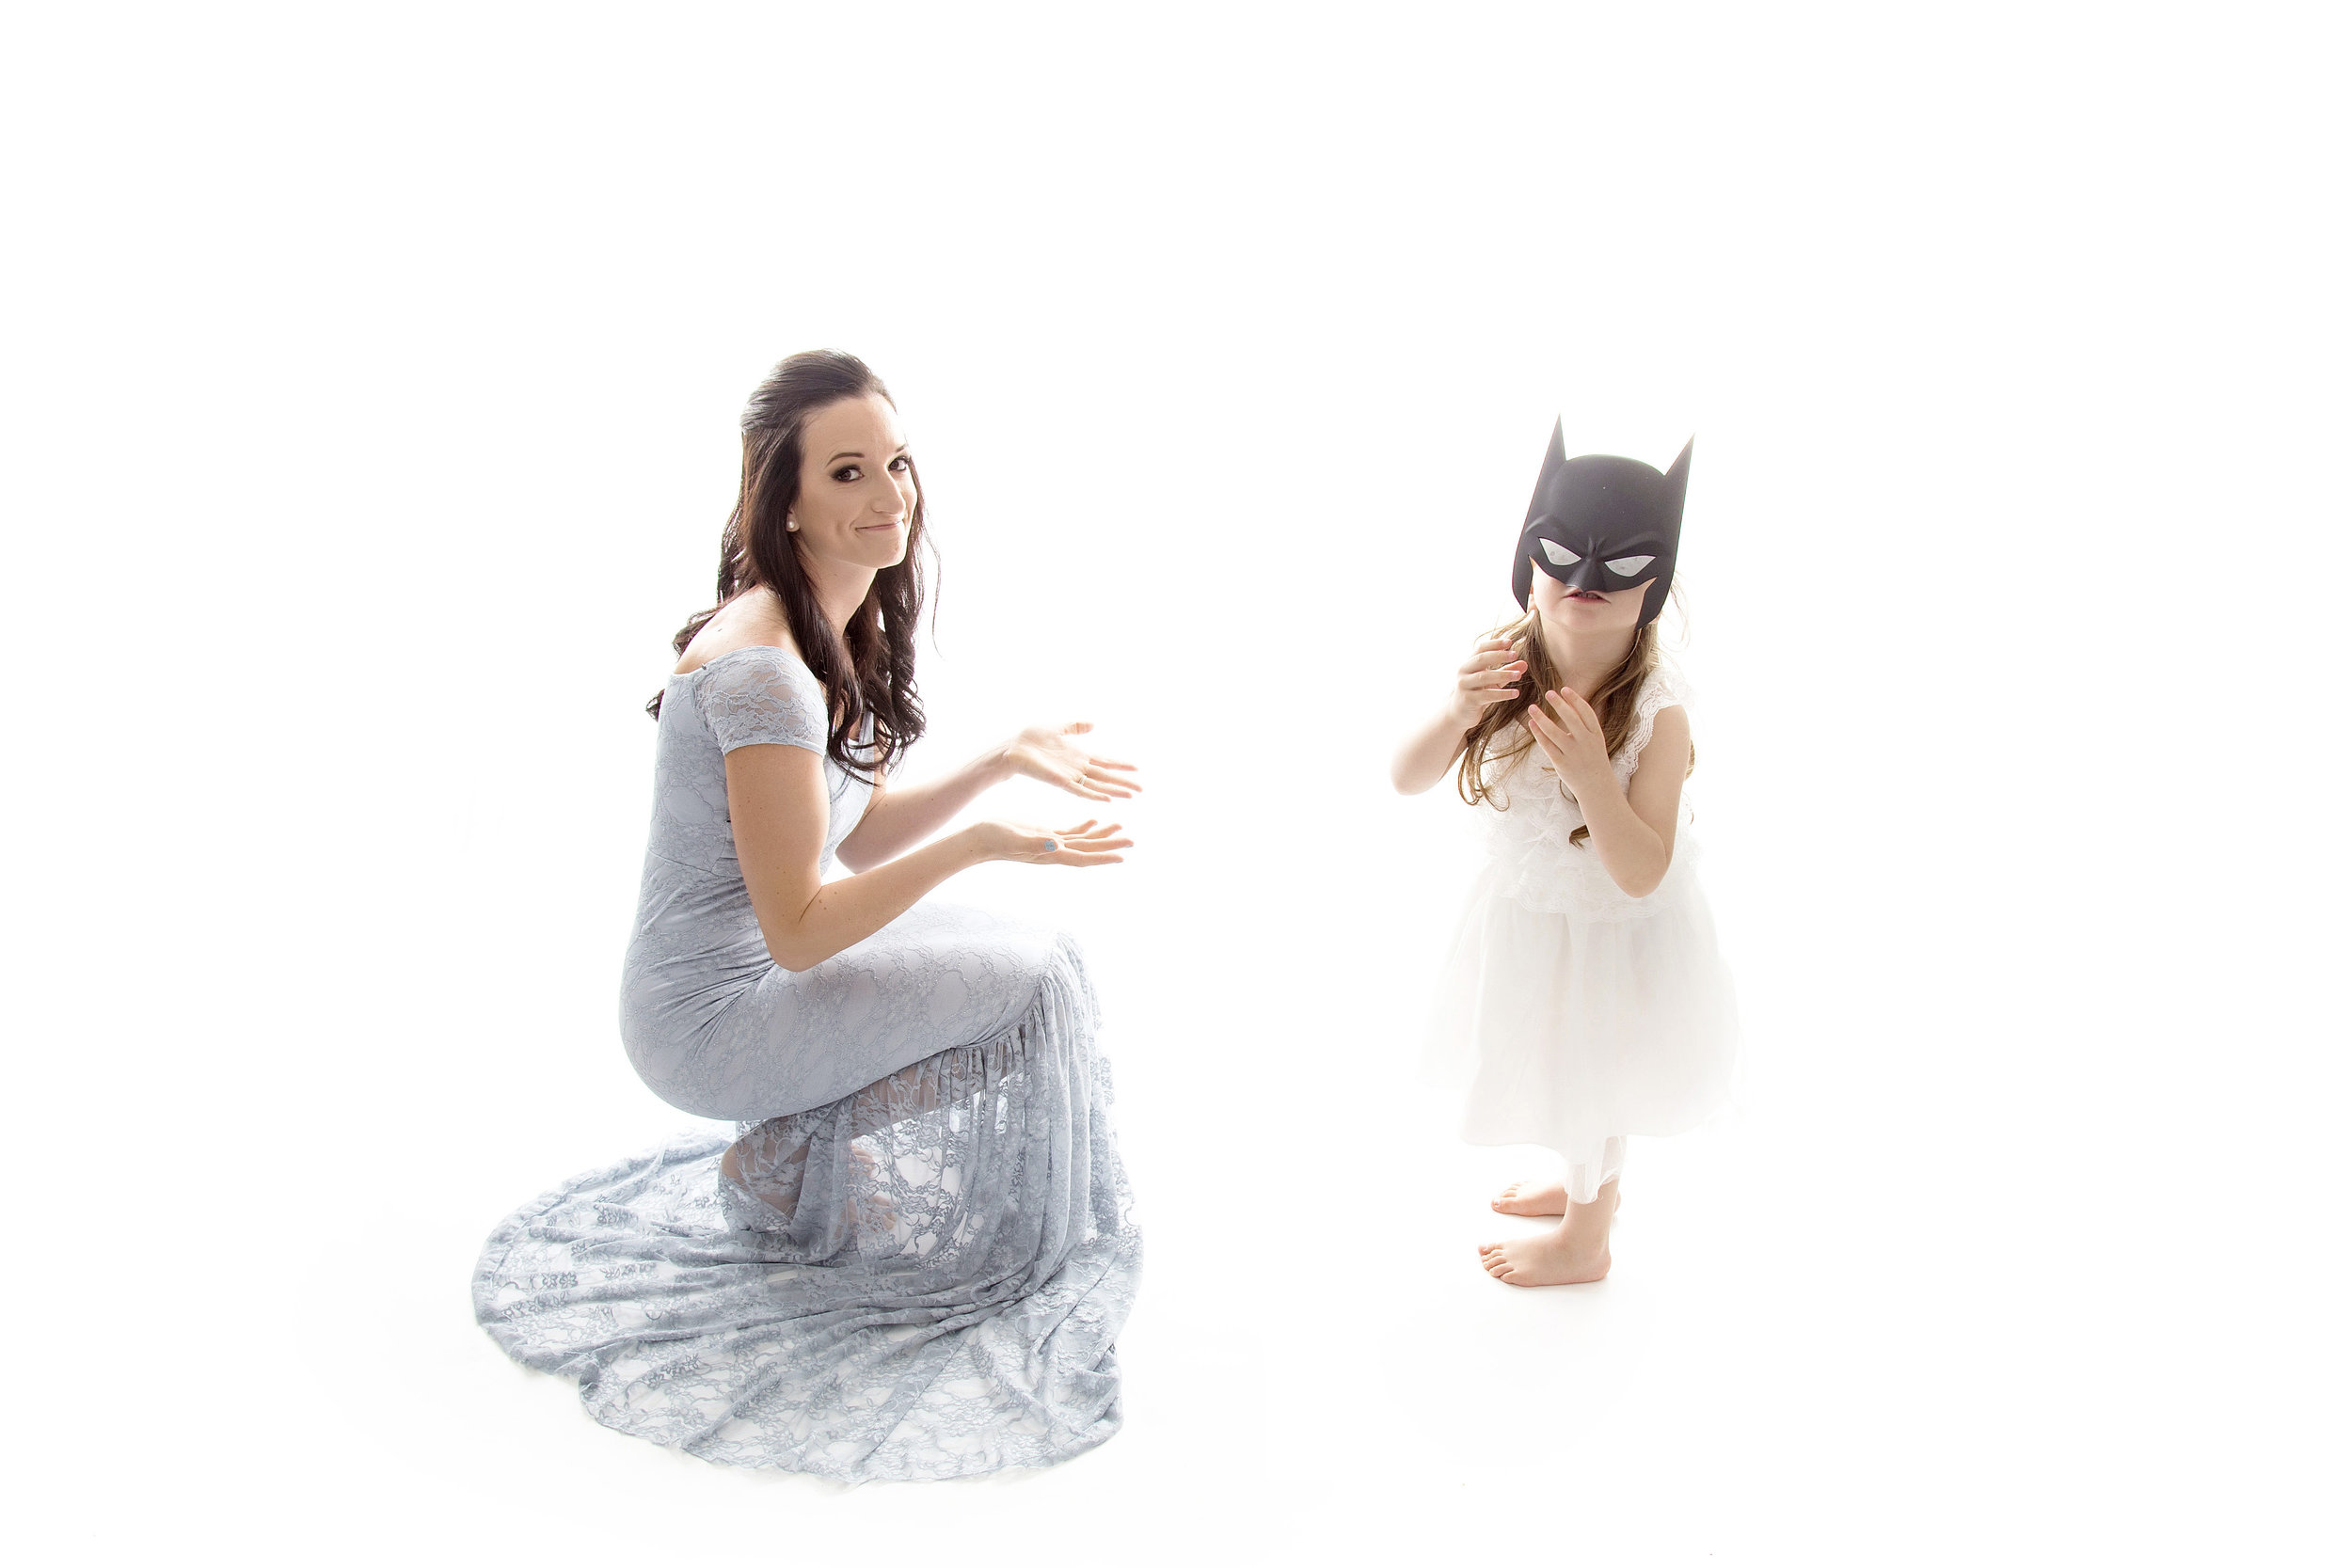 This one is from our 2018 Mommy & Me {Dream Lighting} Event. I love everything about this image because Keana is such a sweet and spunky little girl. When she picked up the batman mask, we just rolled with it and I absolutely adore this!